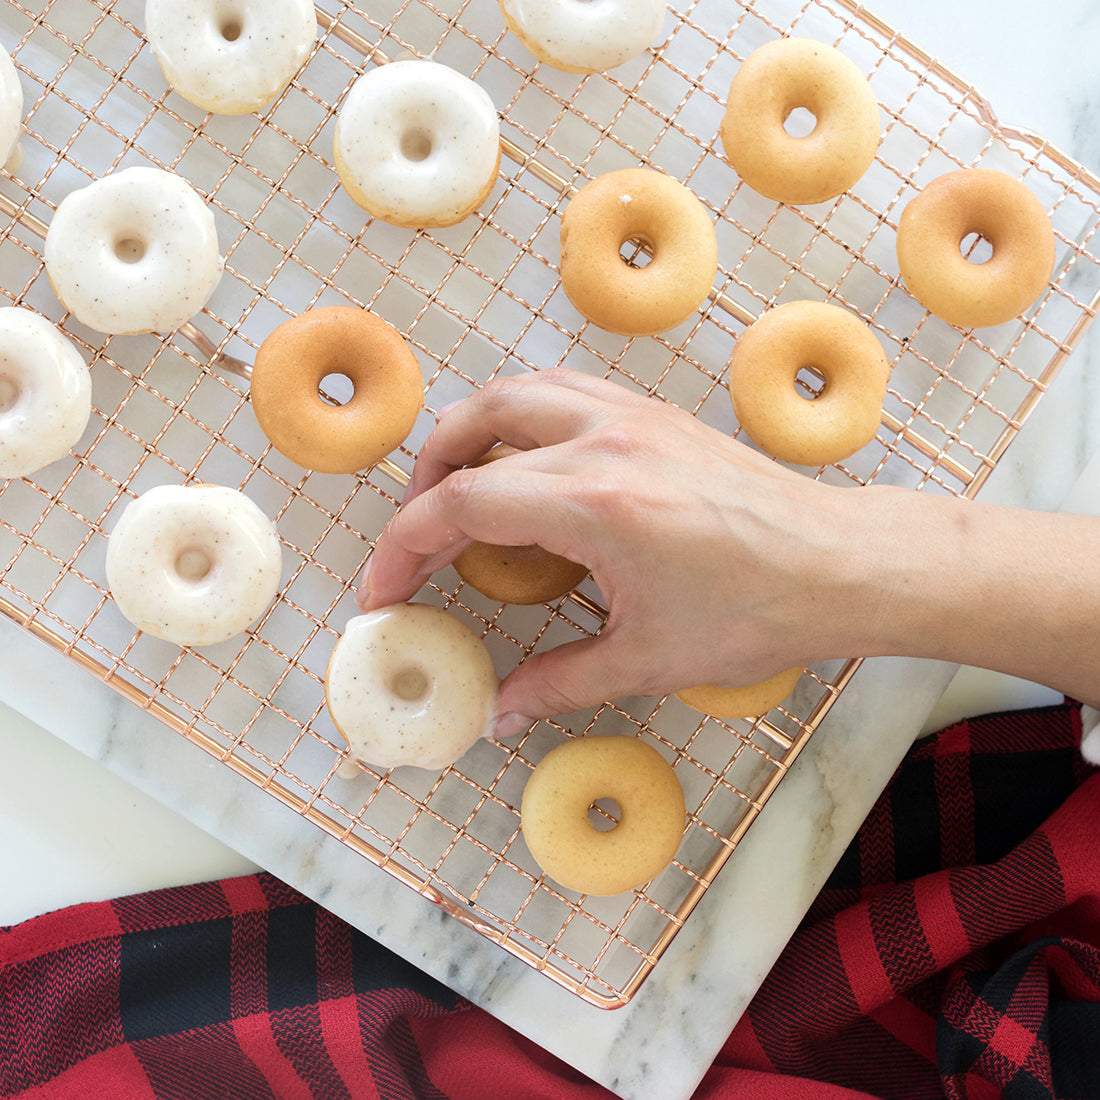 Image of a hand putting down glazed Miss Jones Baking Co Easy Holiday Eggnog Mini Donuts onto a copper baking rack